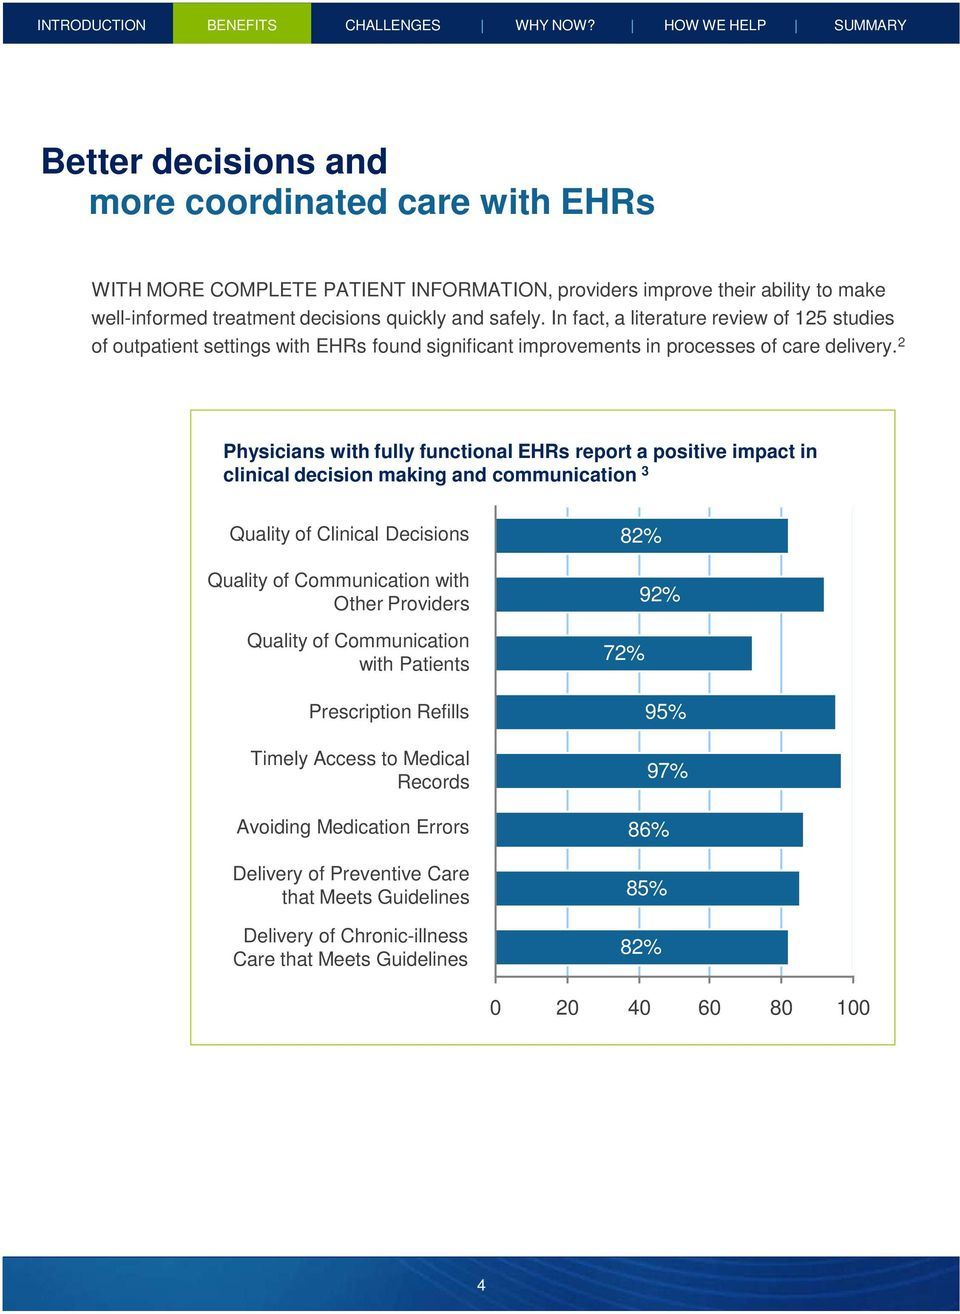 safely. In fact, a literature review of 125 studies of outpatient settings with EHRs found significant improvements in processes of care delivery.